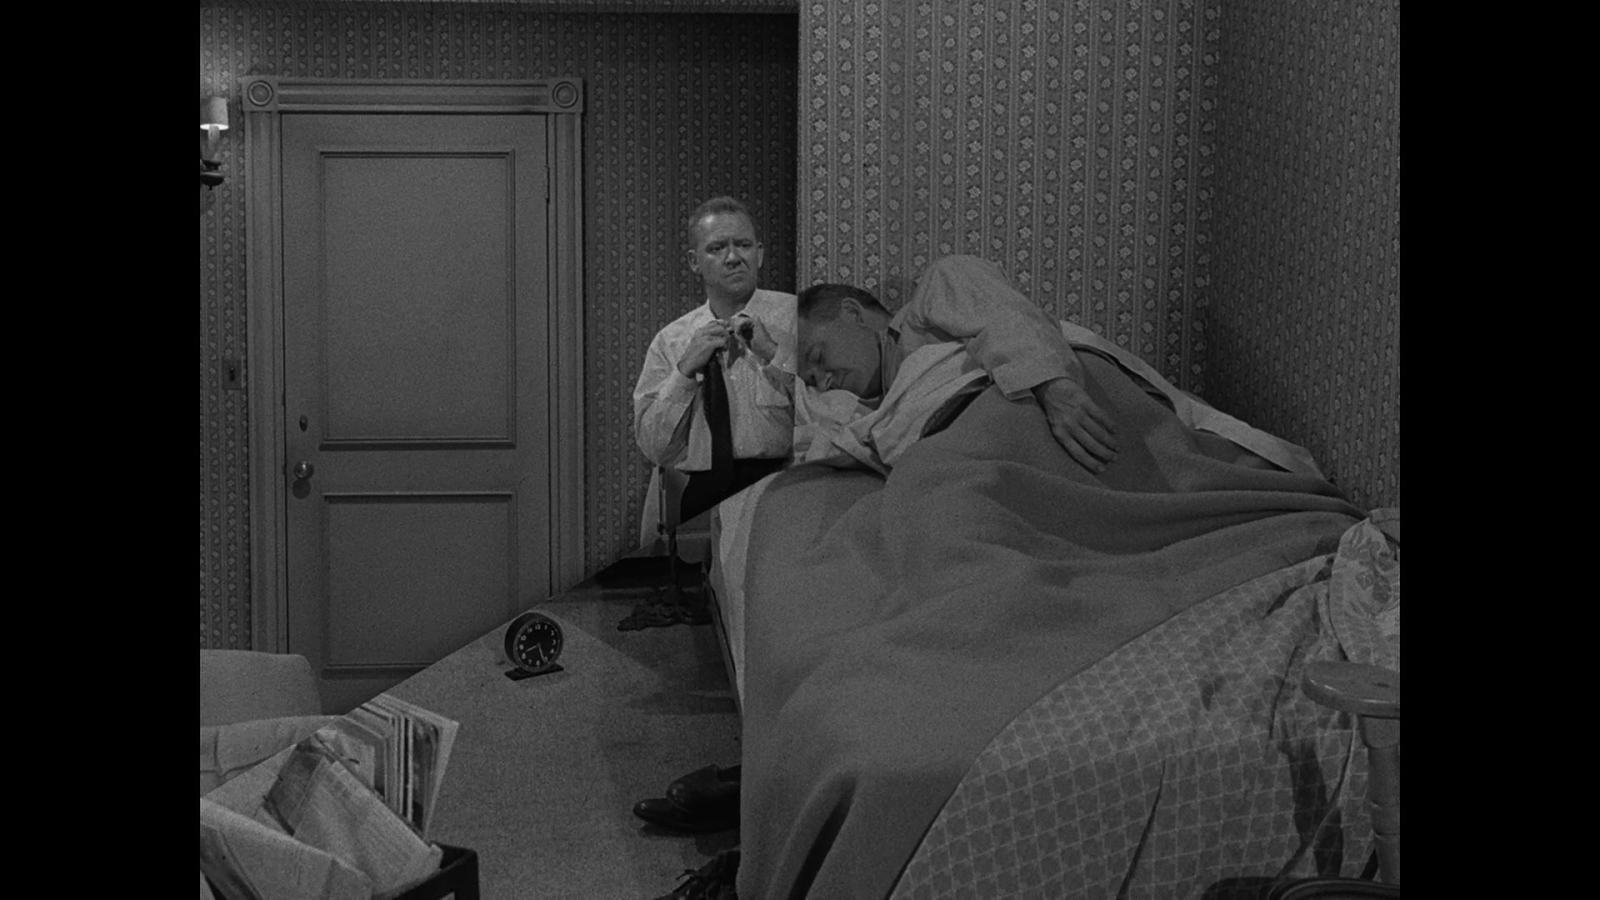 my life in the shadow of the twilight zone episode